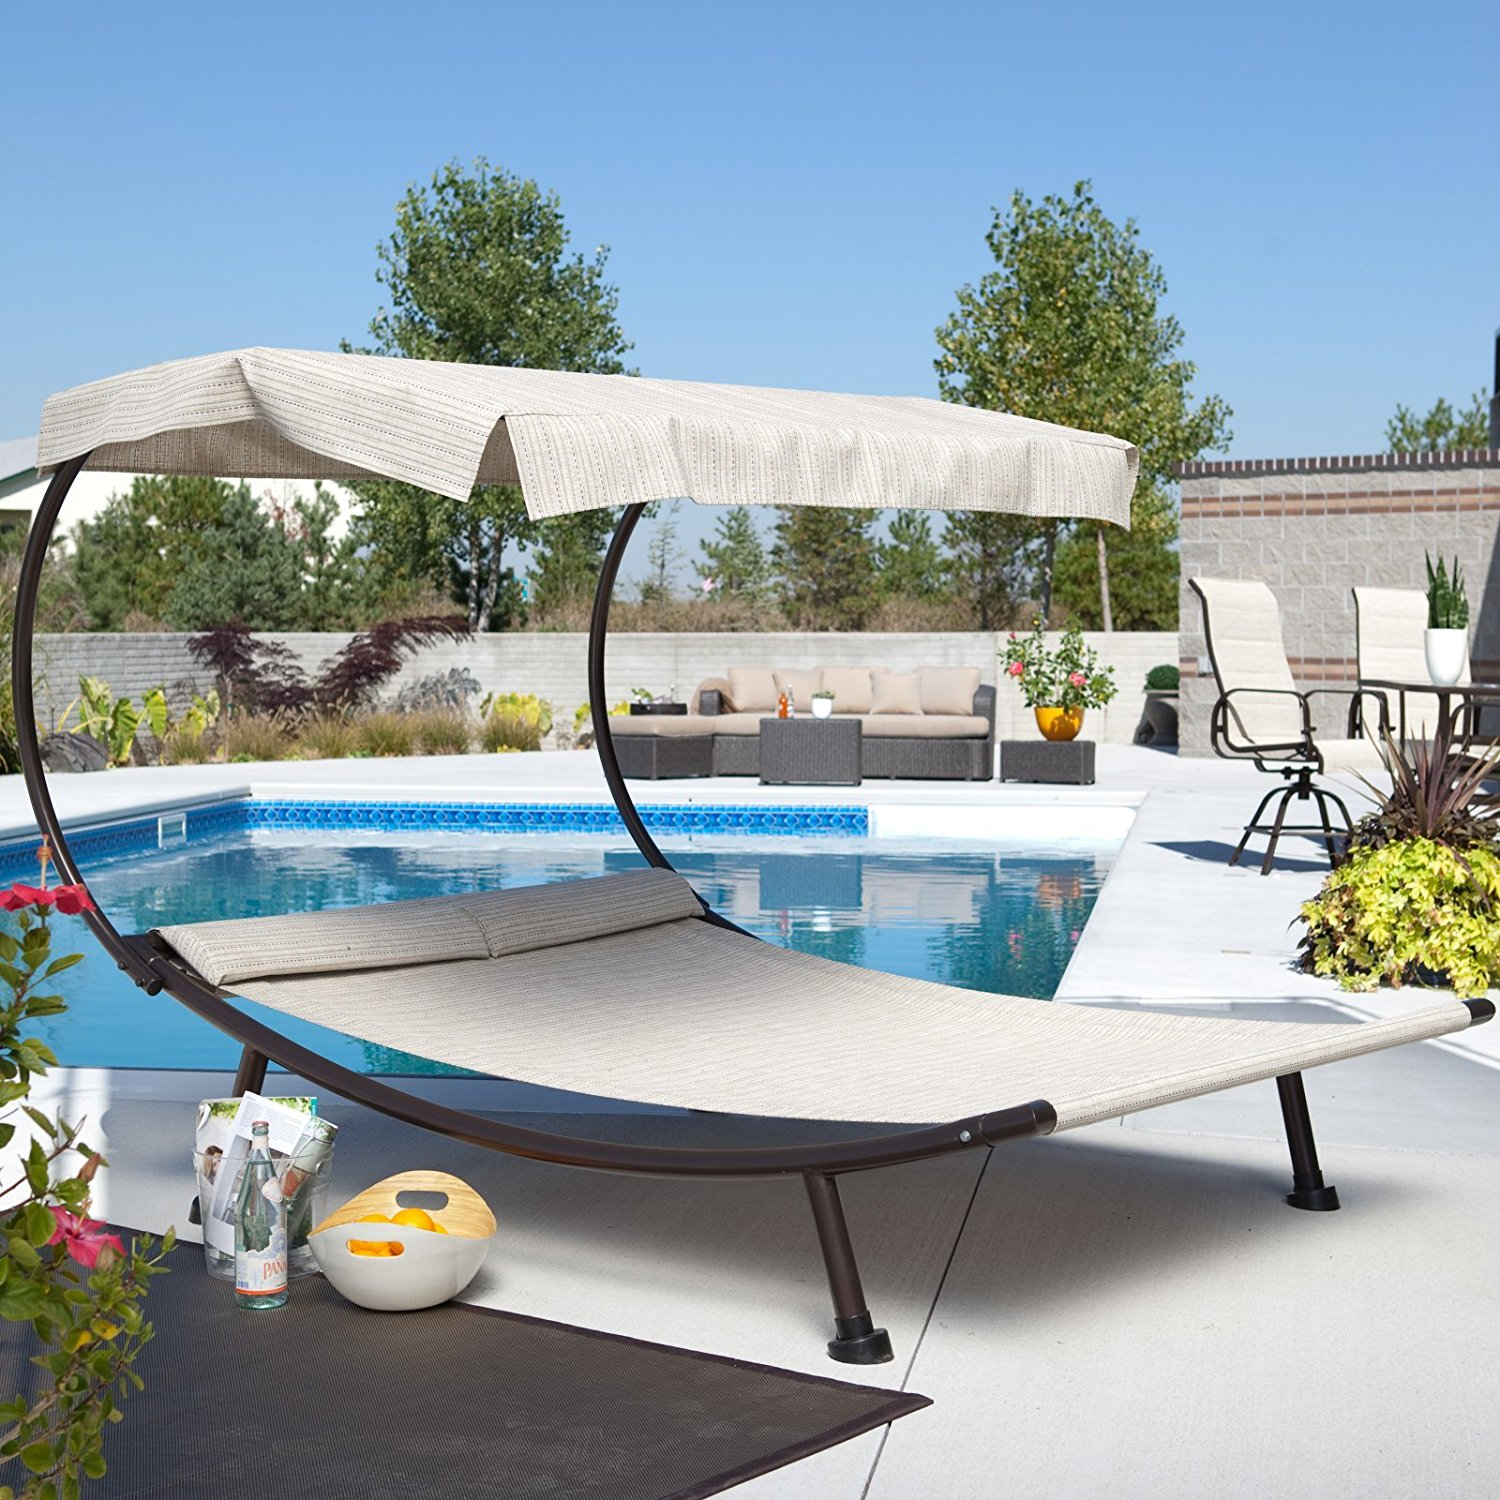 Care 4 Home LLC Beach Pool Canopy Double Chaise Lounge with Padded Headrest, Hammock Like Design, Durable Steel Frame, Garden, Outdoor Furniture